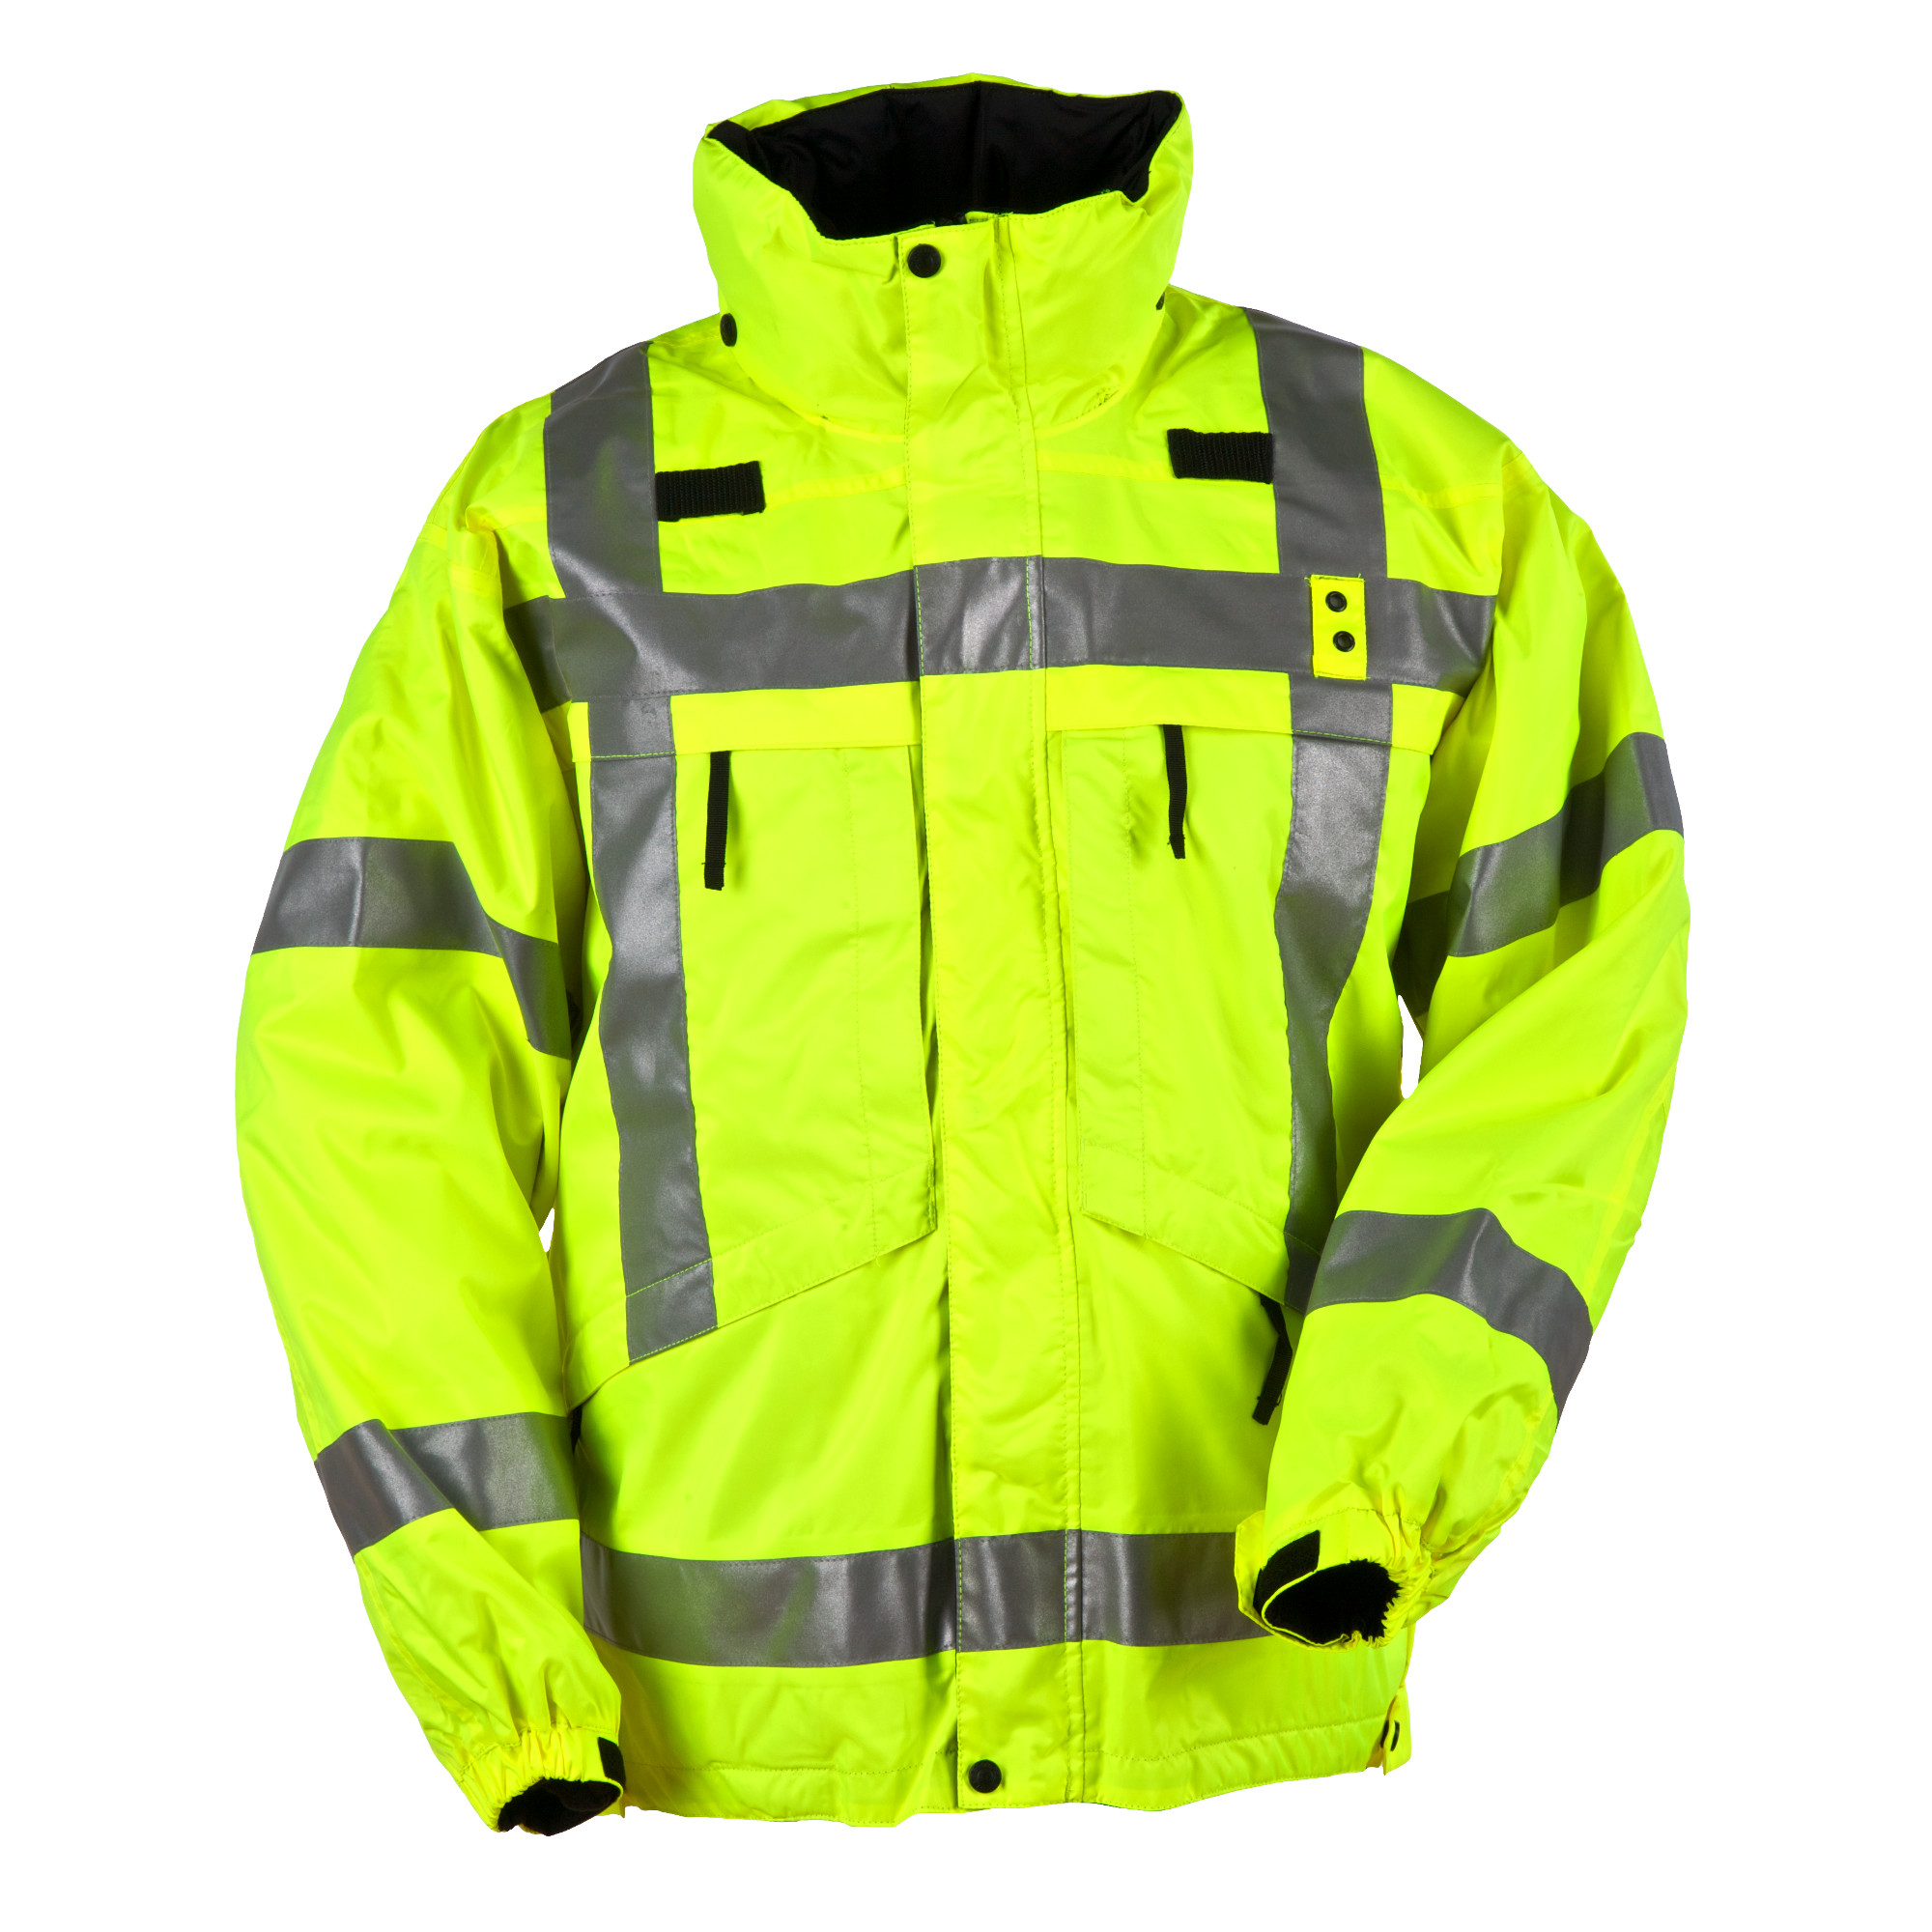 5.11 Mens 3-in-1 Hi-Viz Reversable Parka 48033